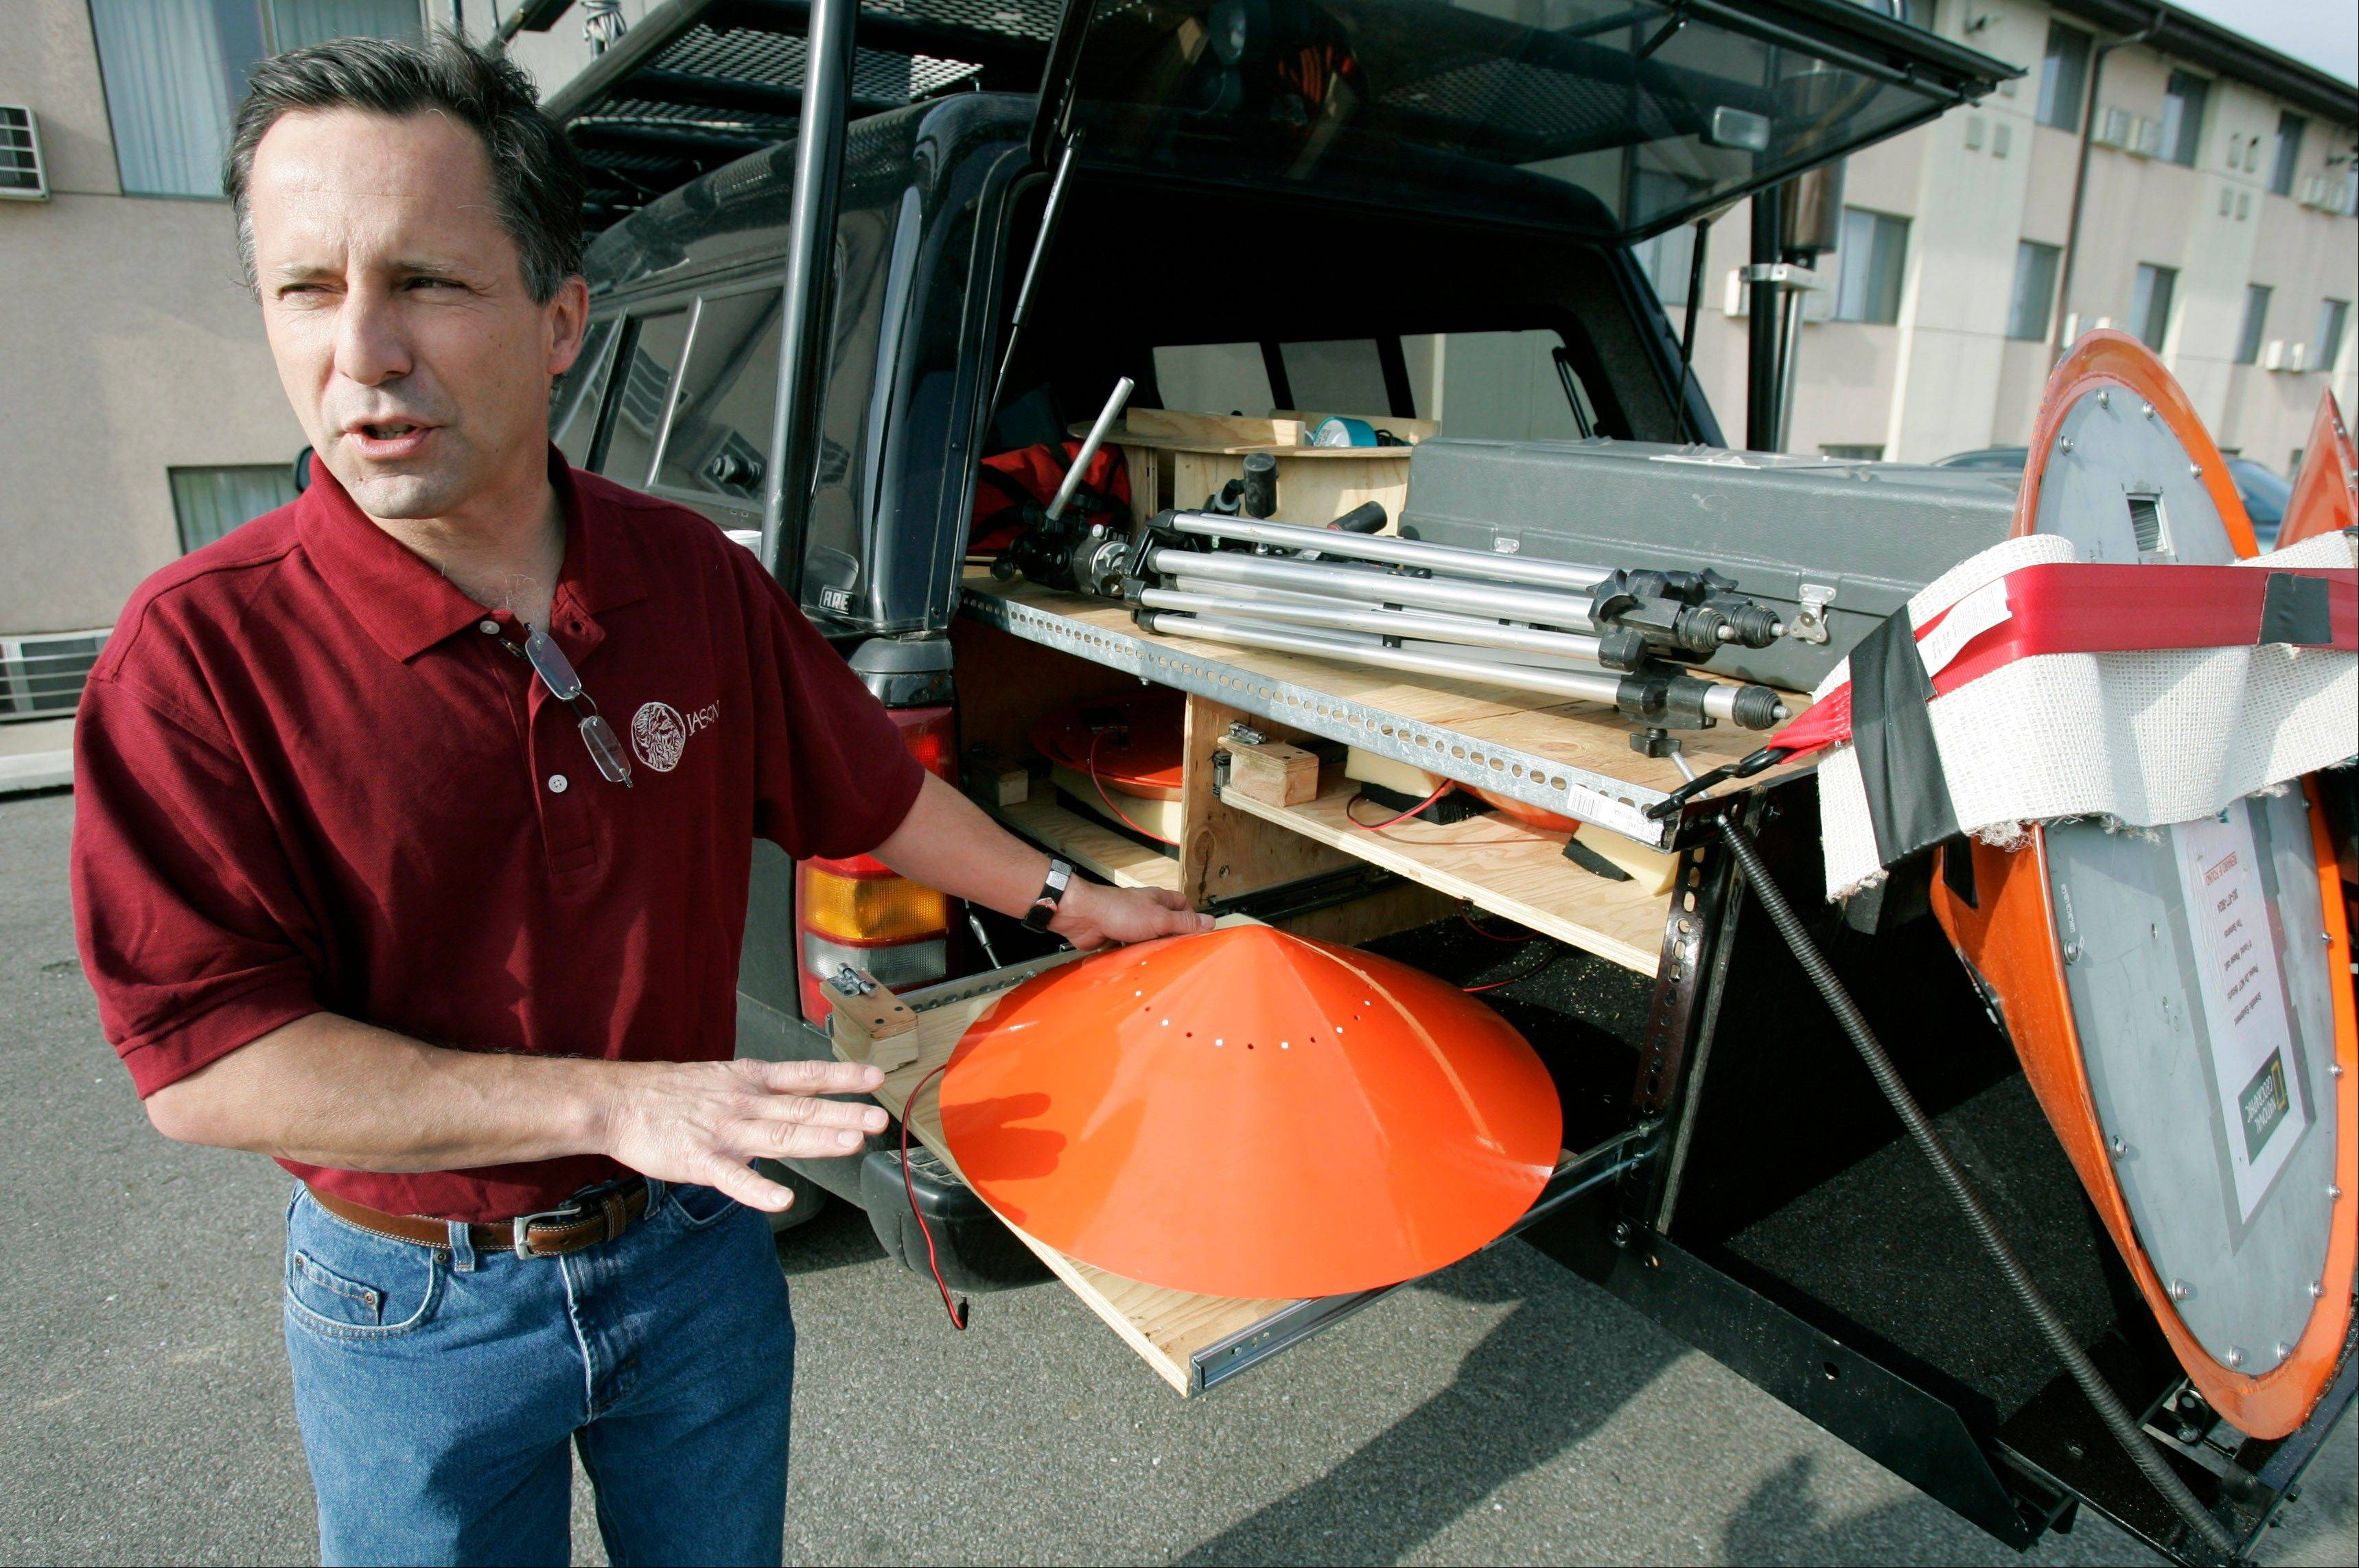 Tornado chaser Tim Samaras is seen here in May 2006. His brother said Sunday that Tim Samaras was killed along with Tim's son, Paul Samaras, and another chaser, Carl Young, on Friday while chasing a tornado near Oklahoma City.